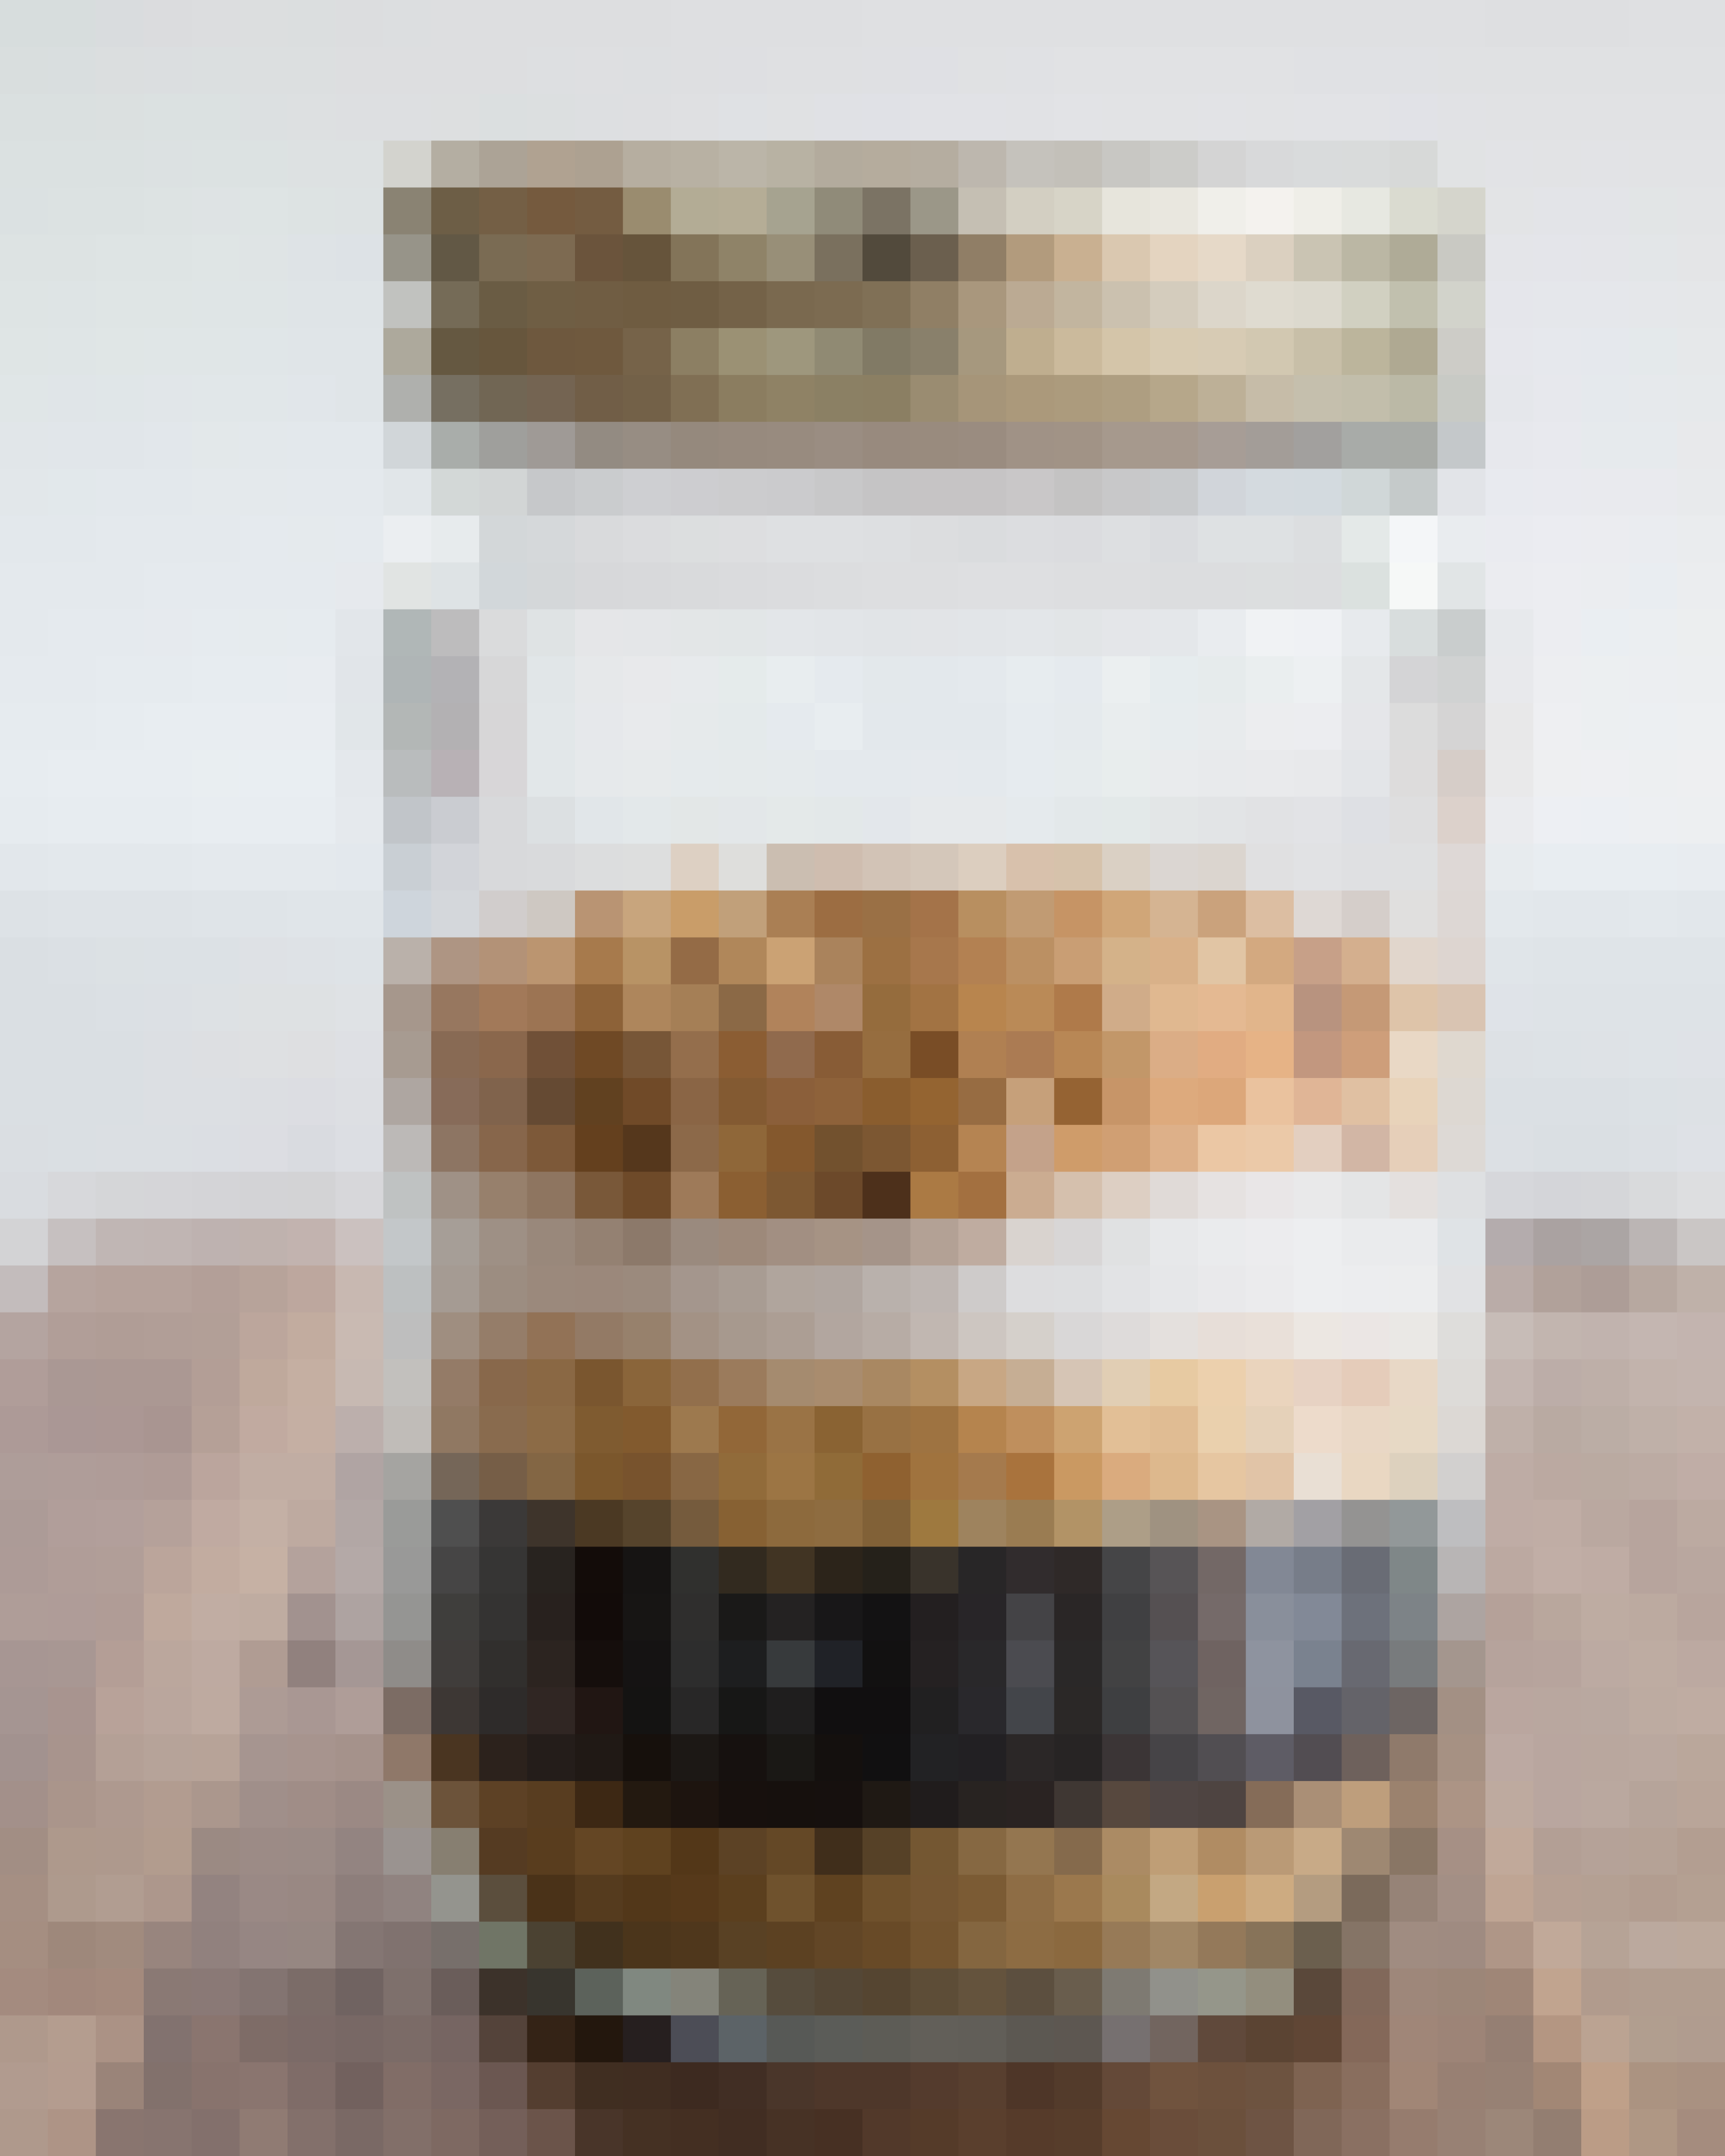 How To Make Everything Bagel Spice: gallery image 2